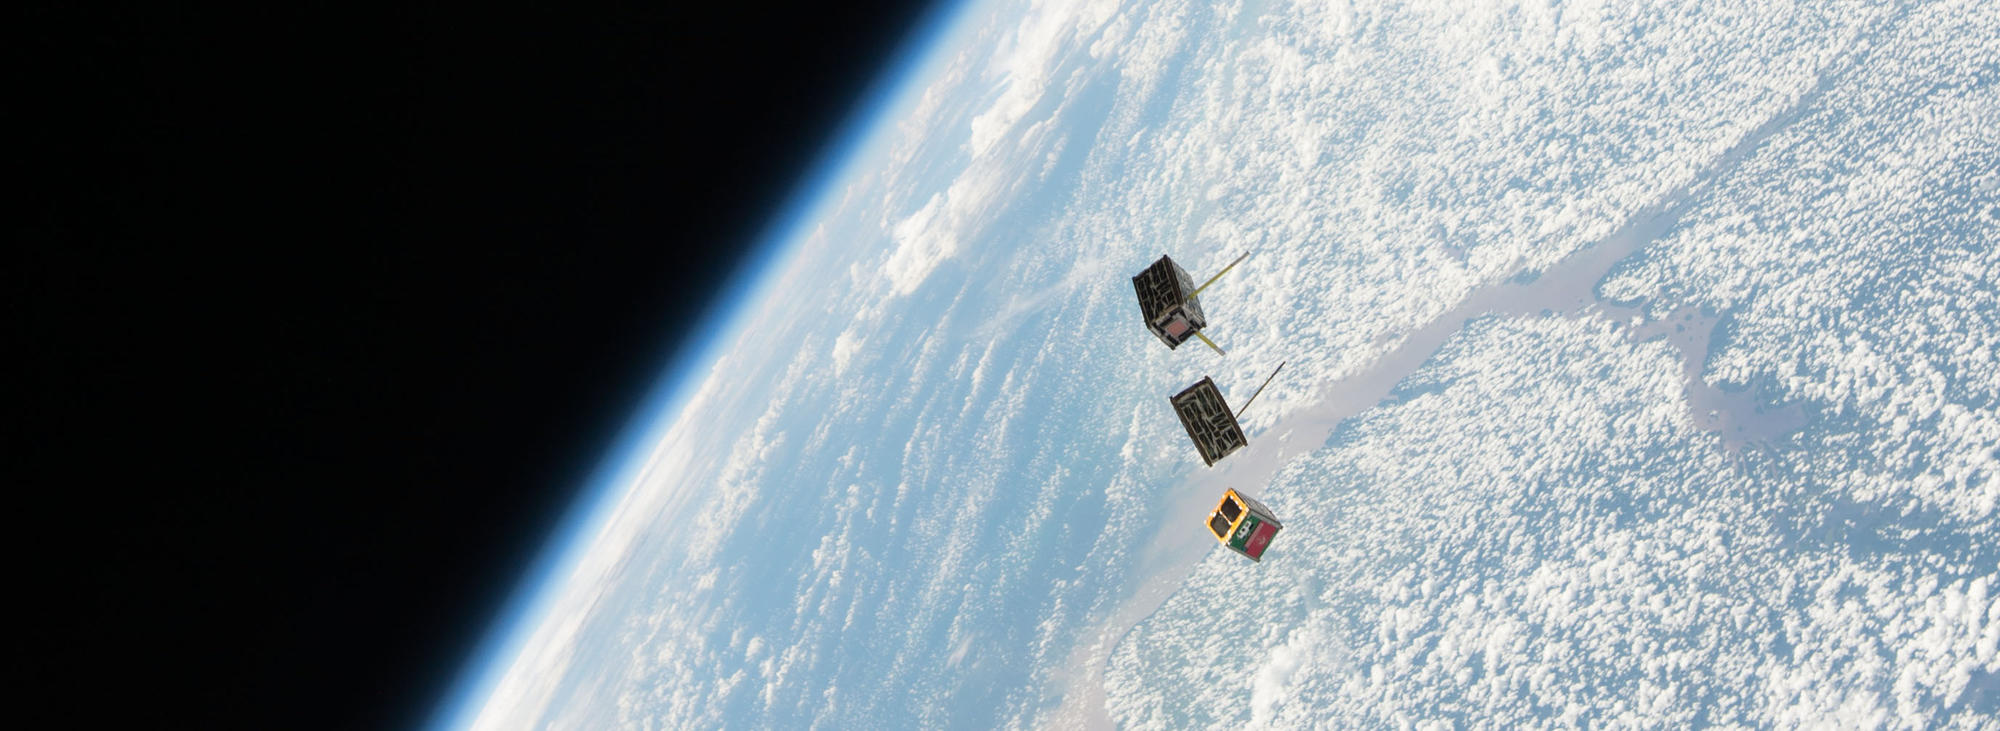 cubesats_in_orbit